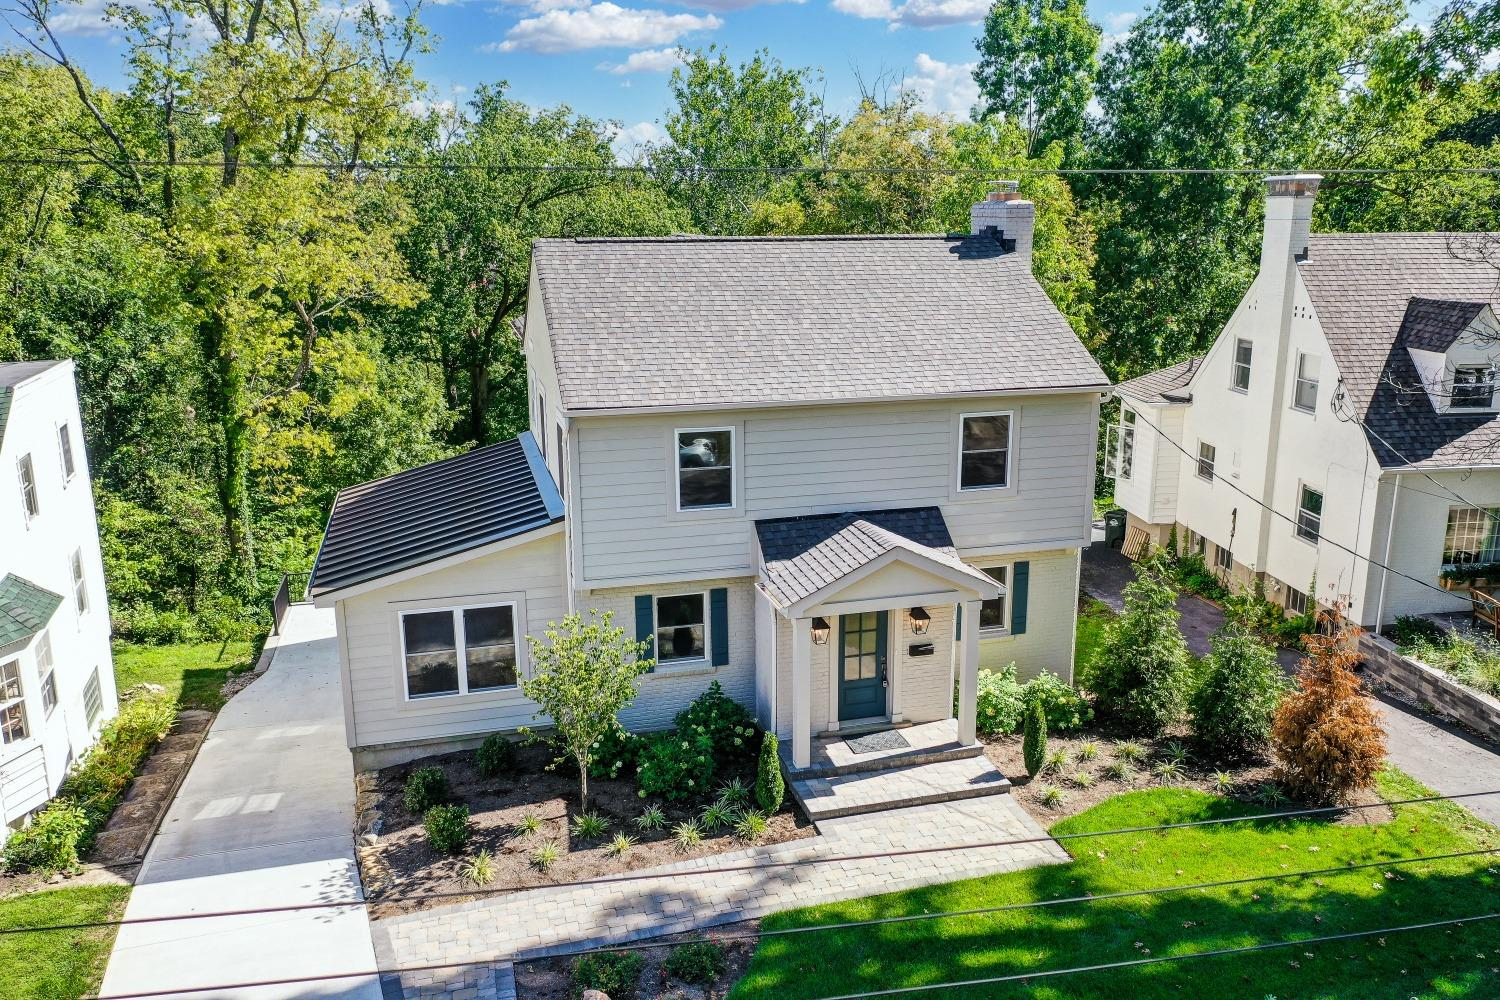 NOW COMPLETE! This gorgeous 1950 Colonial/Traditional home has a large new addition plus full-house updates to meet your dreams! Much larger than it looks and ready for you to move in!